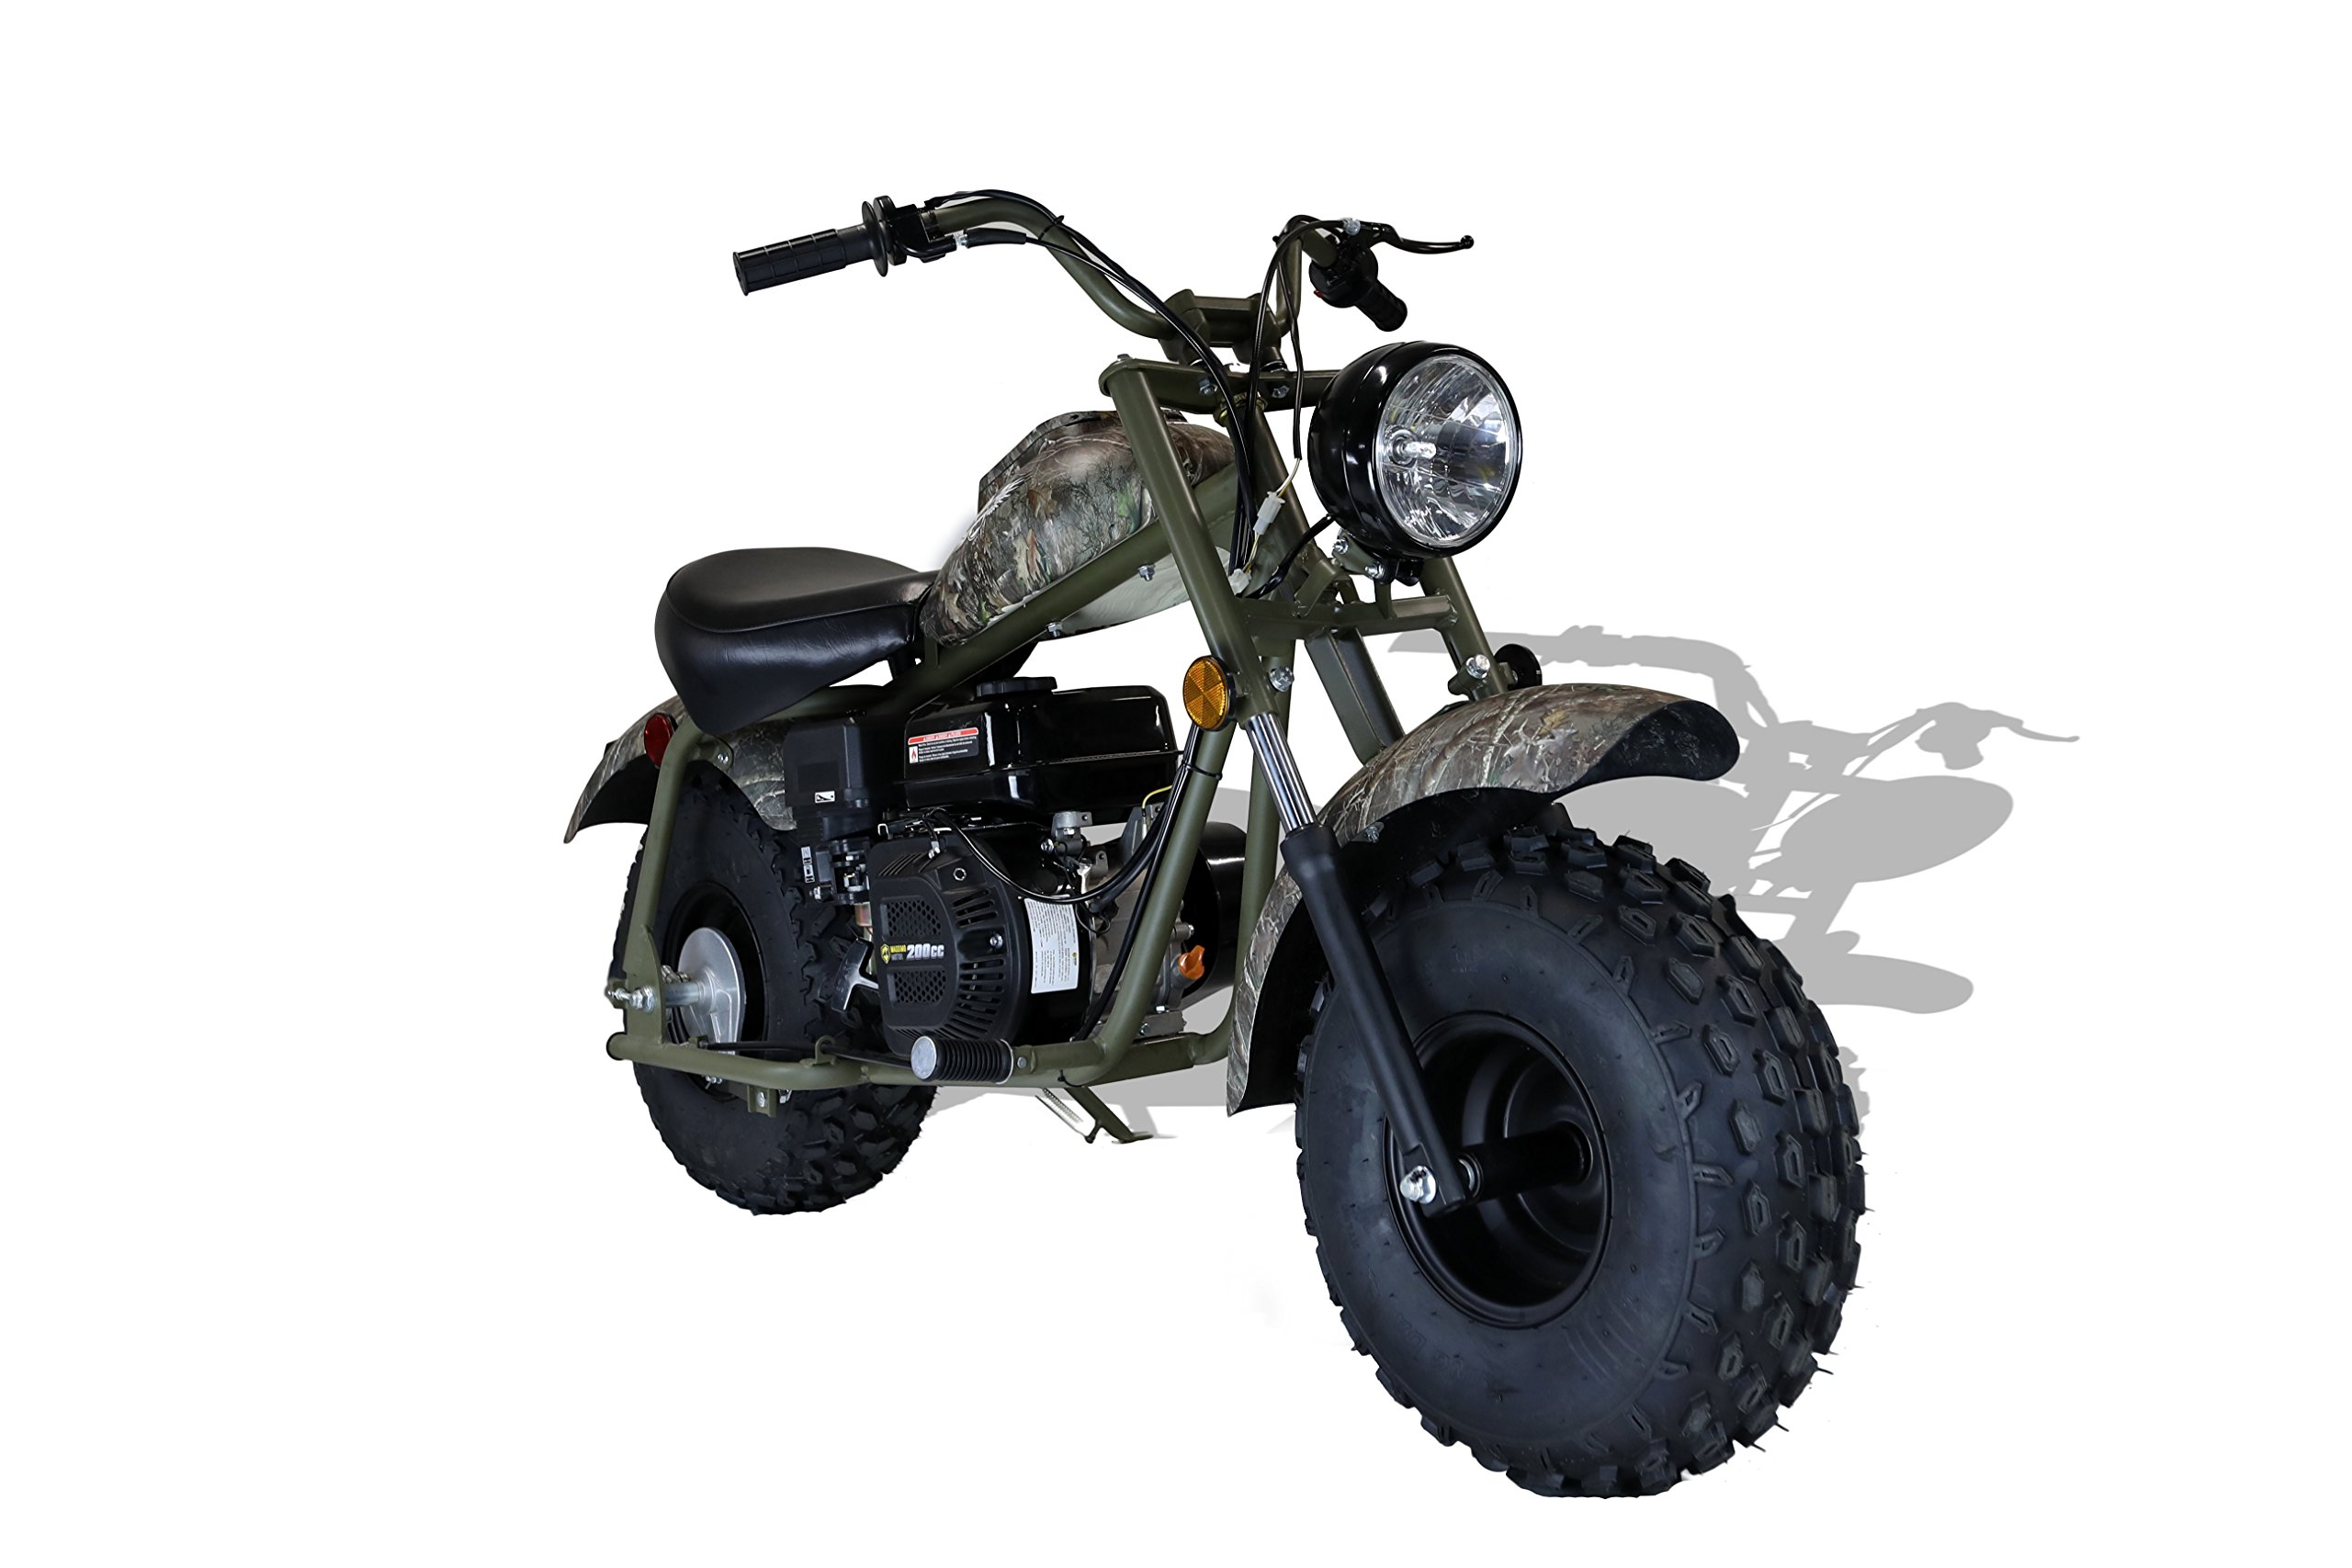 MASSIMO MB200 SUPERSIZED 196CC MINI BIKE - SHIPPING & WARRANTY INCLUDED! by M MASSIMO MOTOR (Image #6)